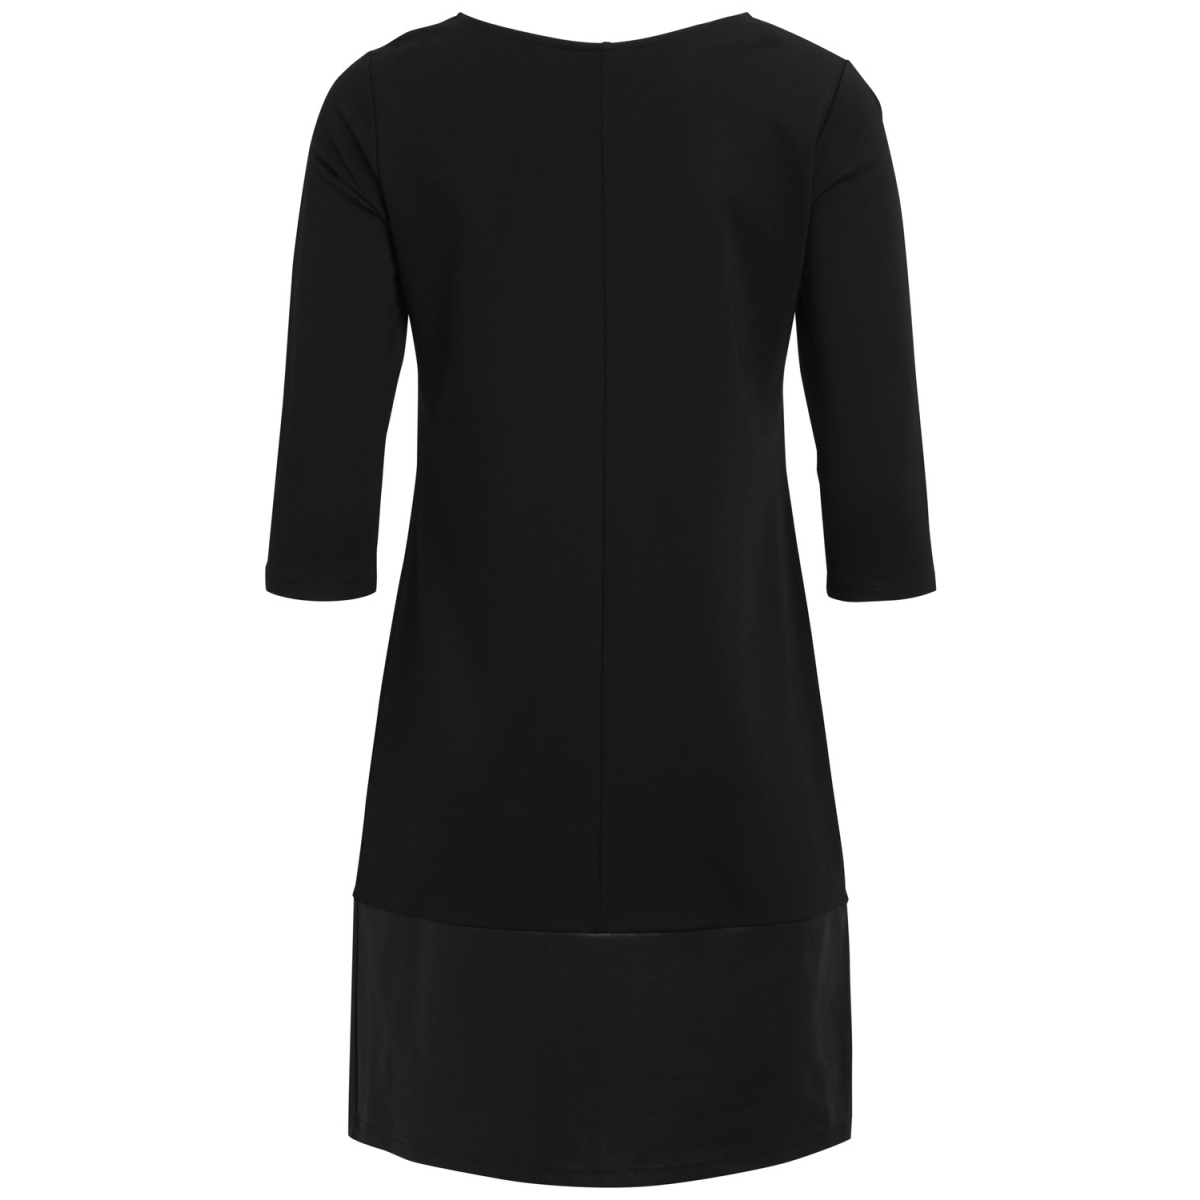 vially 3/4 sleeve dress 14043721 vila jurk black